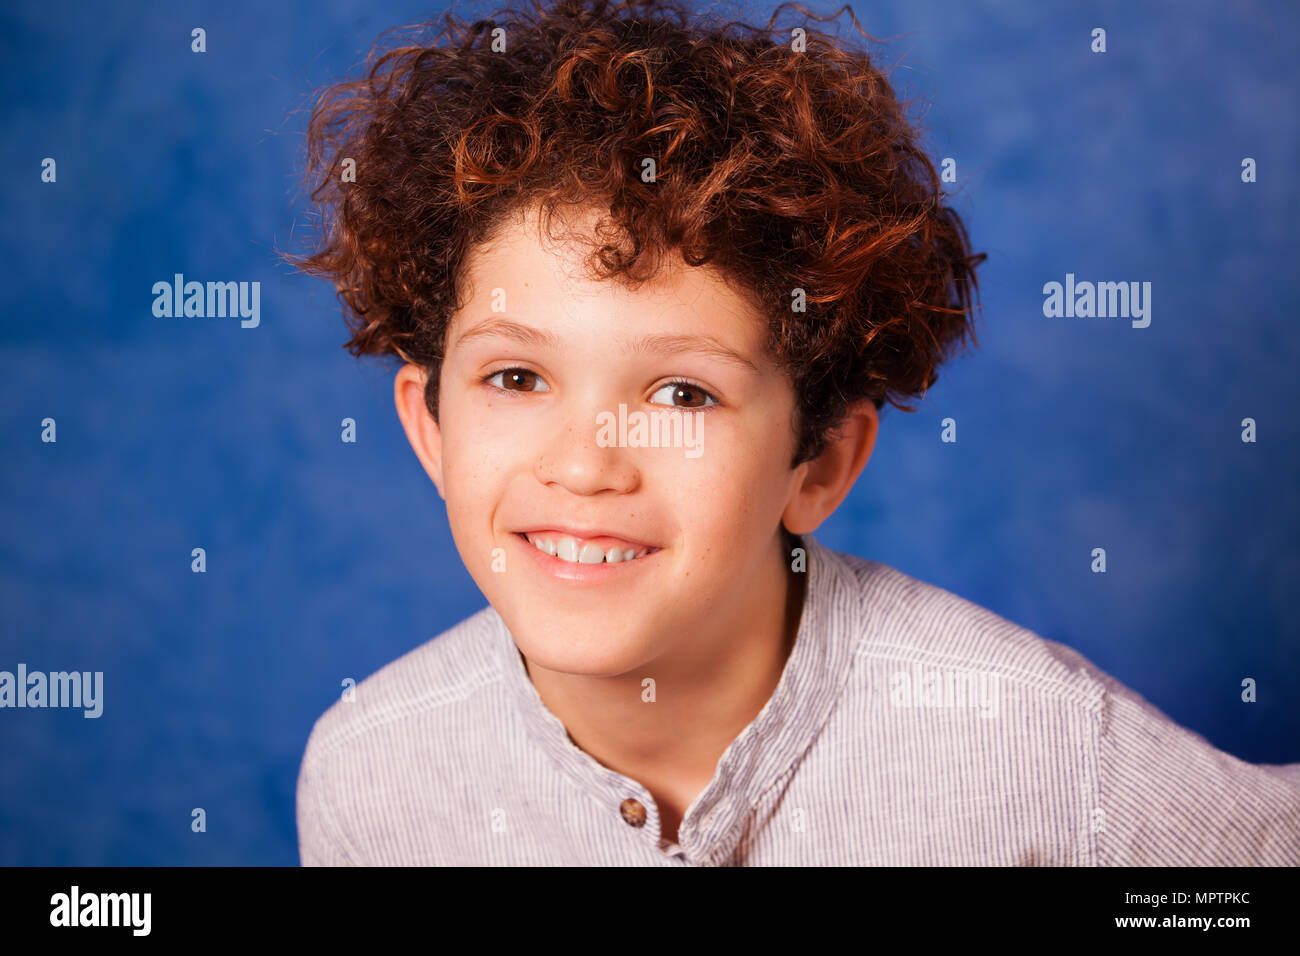 Close-up portrait of smiling preteen boy with curly hair and brown eyes against blue background - Stock Image